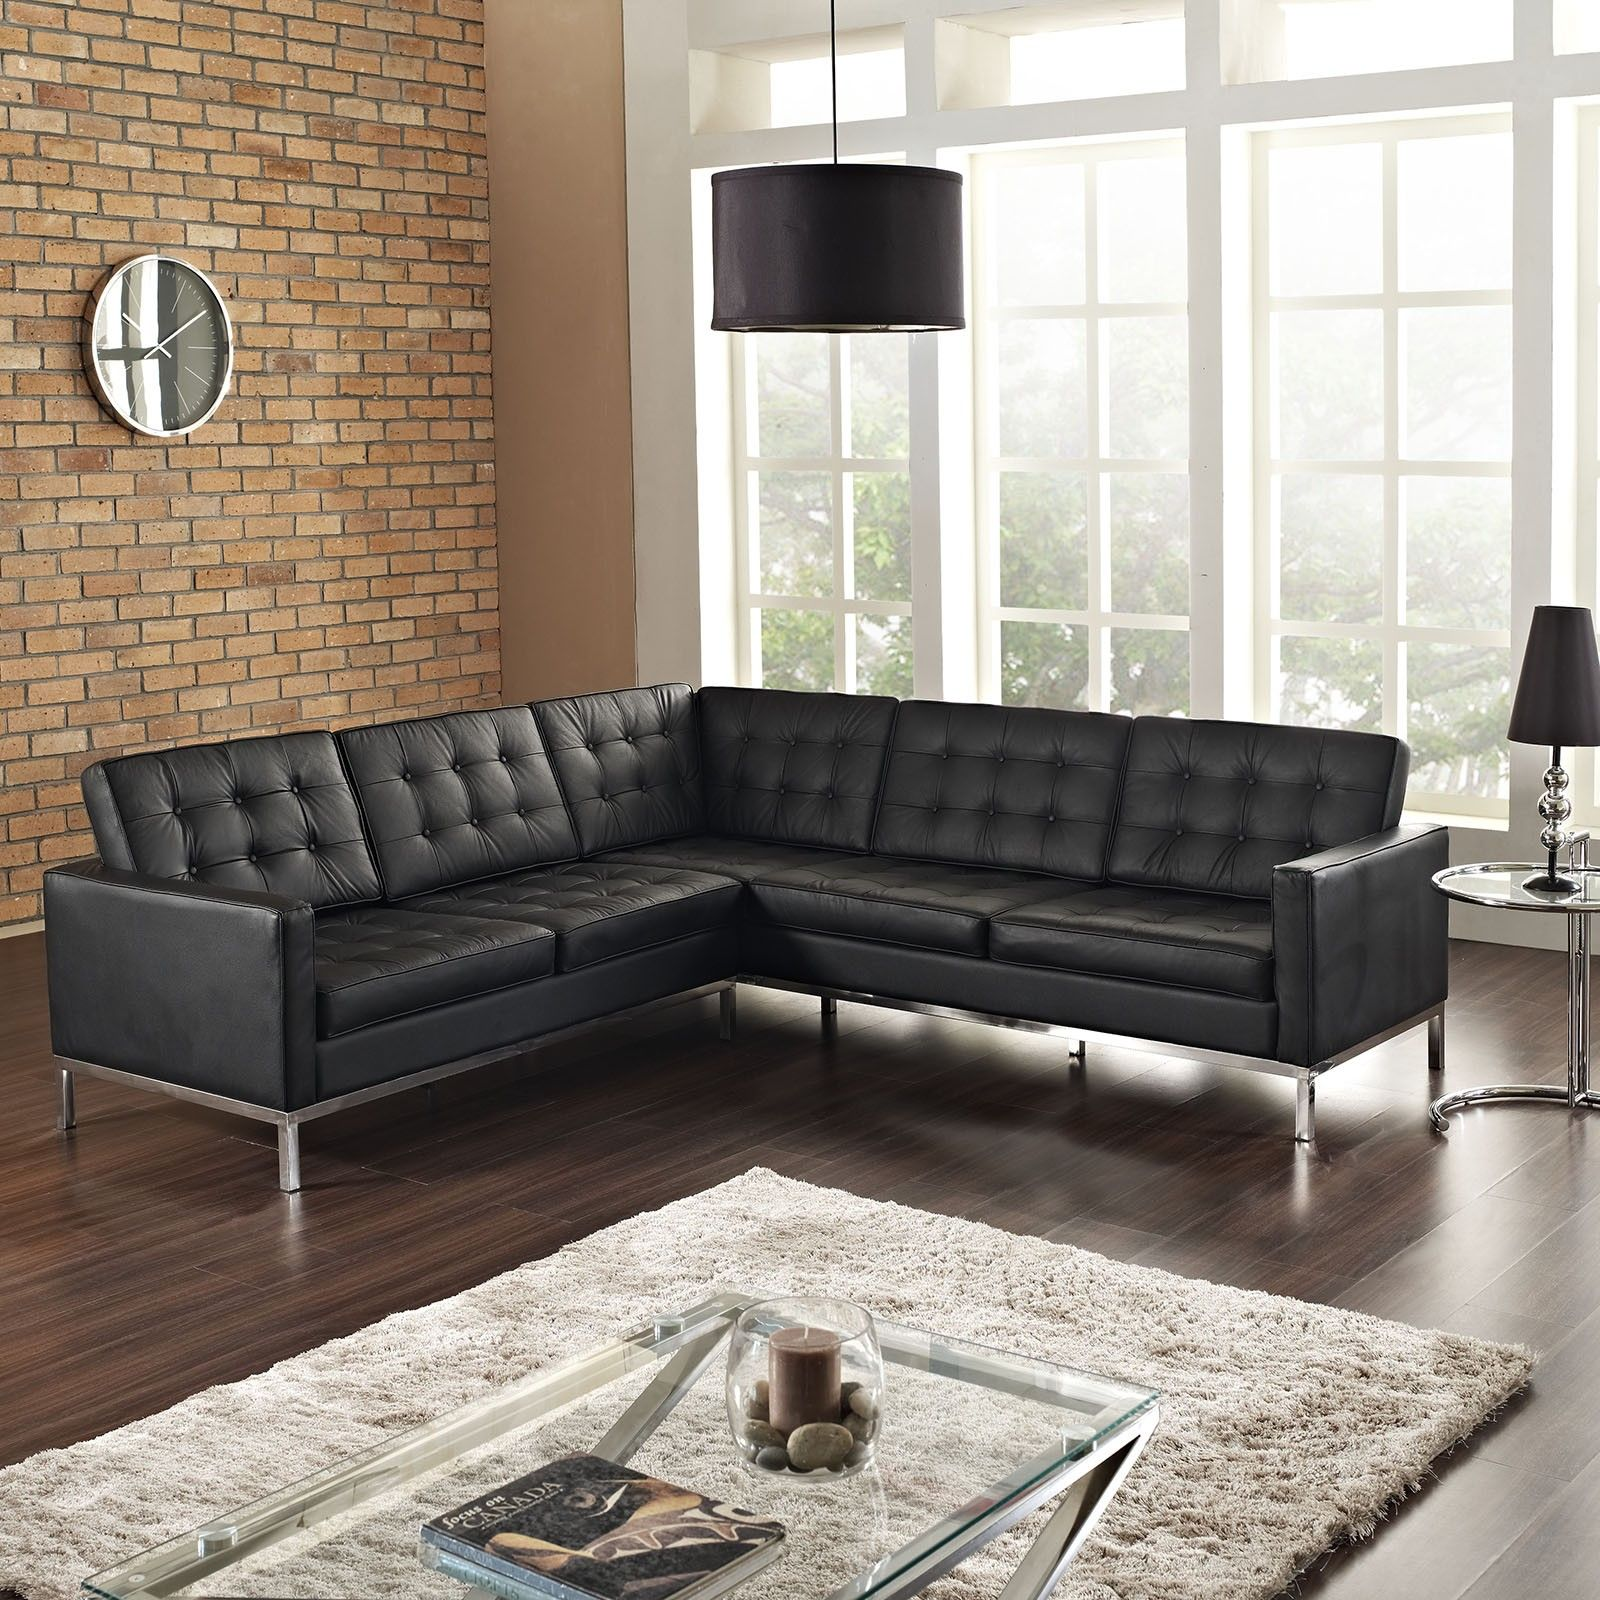 Florence Knoll Replica Sectional : knoll sectional - Sectionals, Sofas & Couches